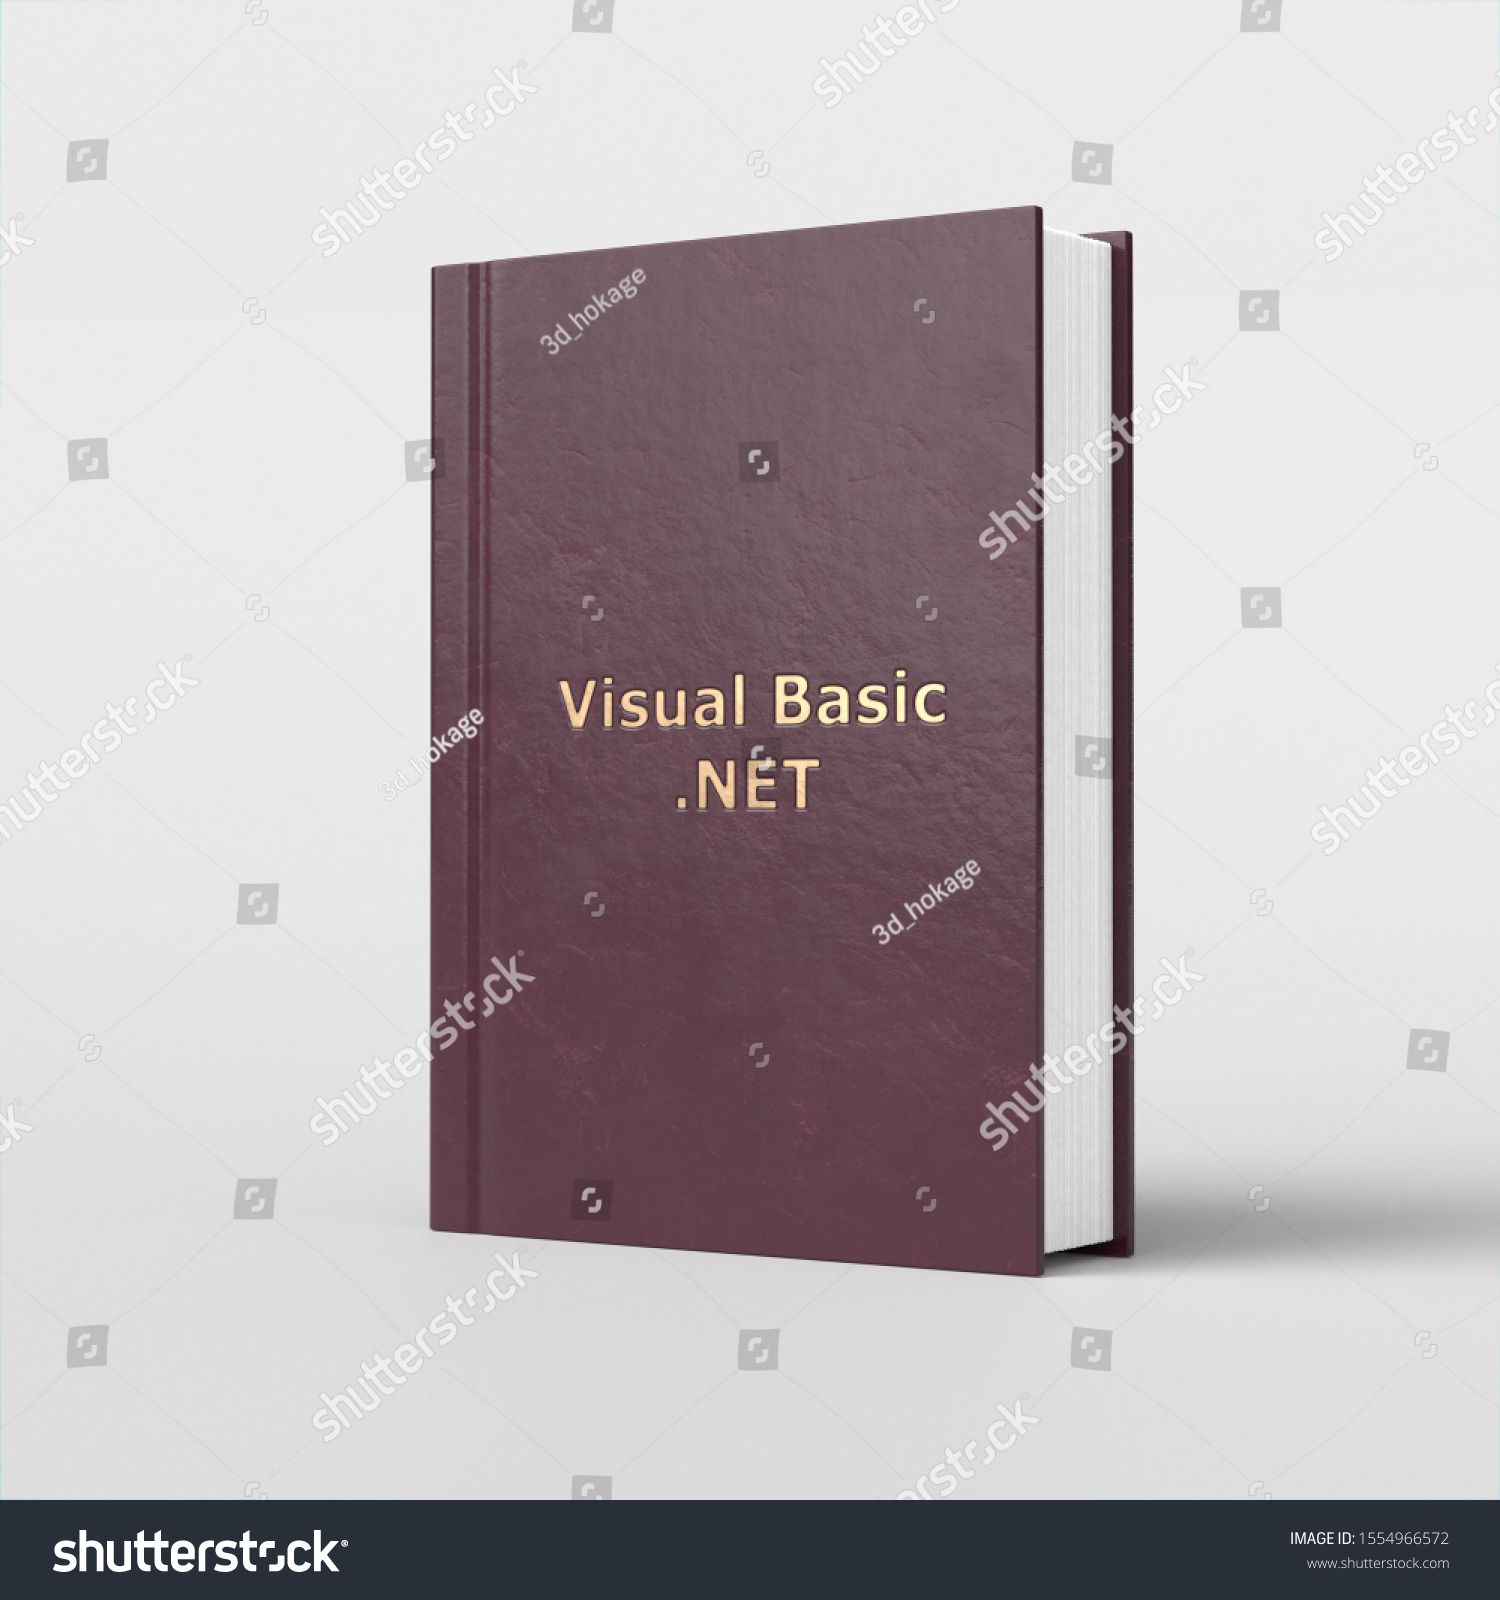 d16d3921d688225240a9172fcc66be68 - Visual Basic For Applications Smart Notebook